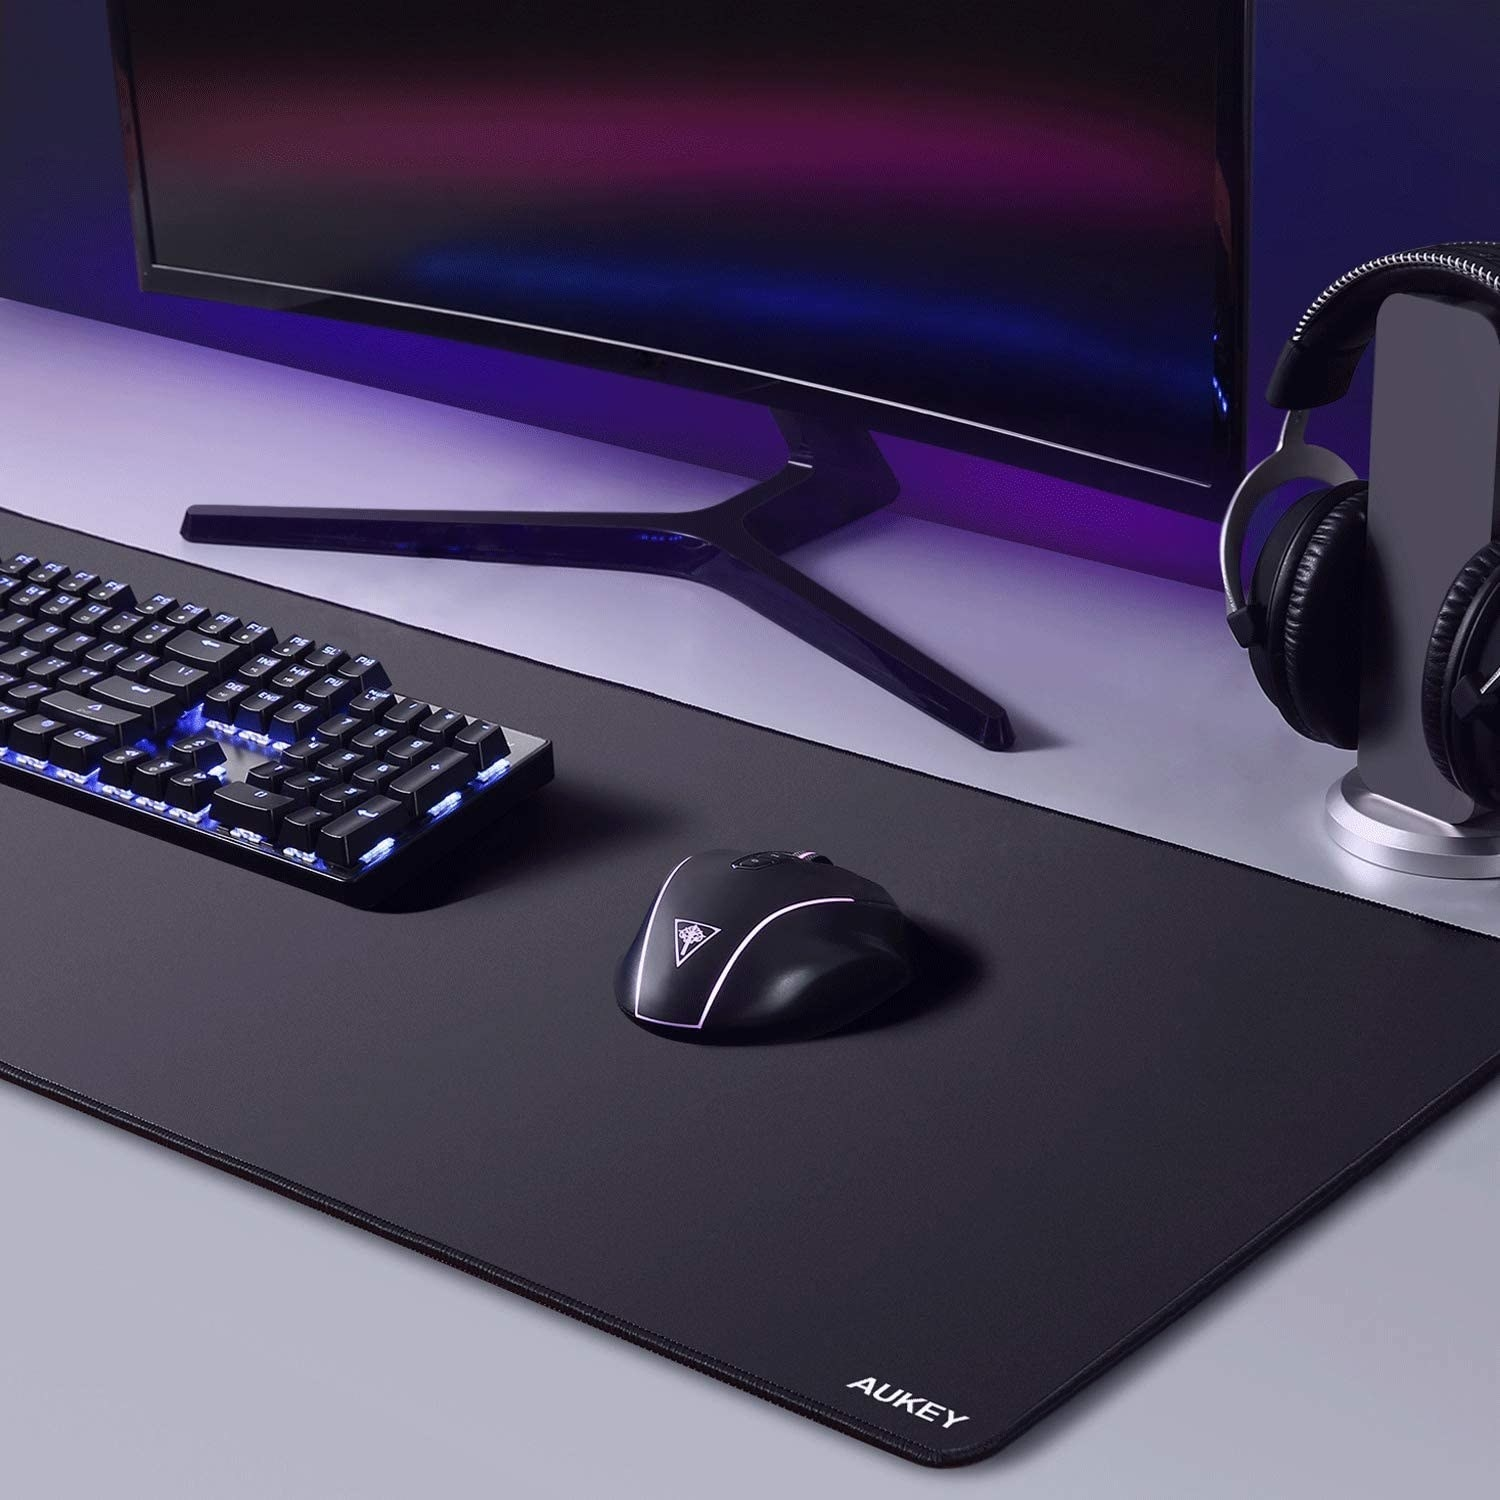 mat with keyboard and mouse on it